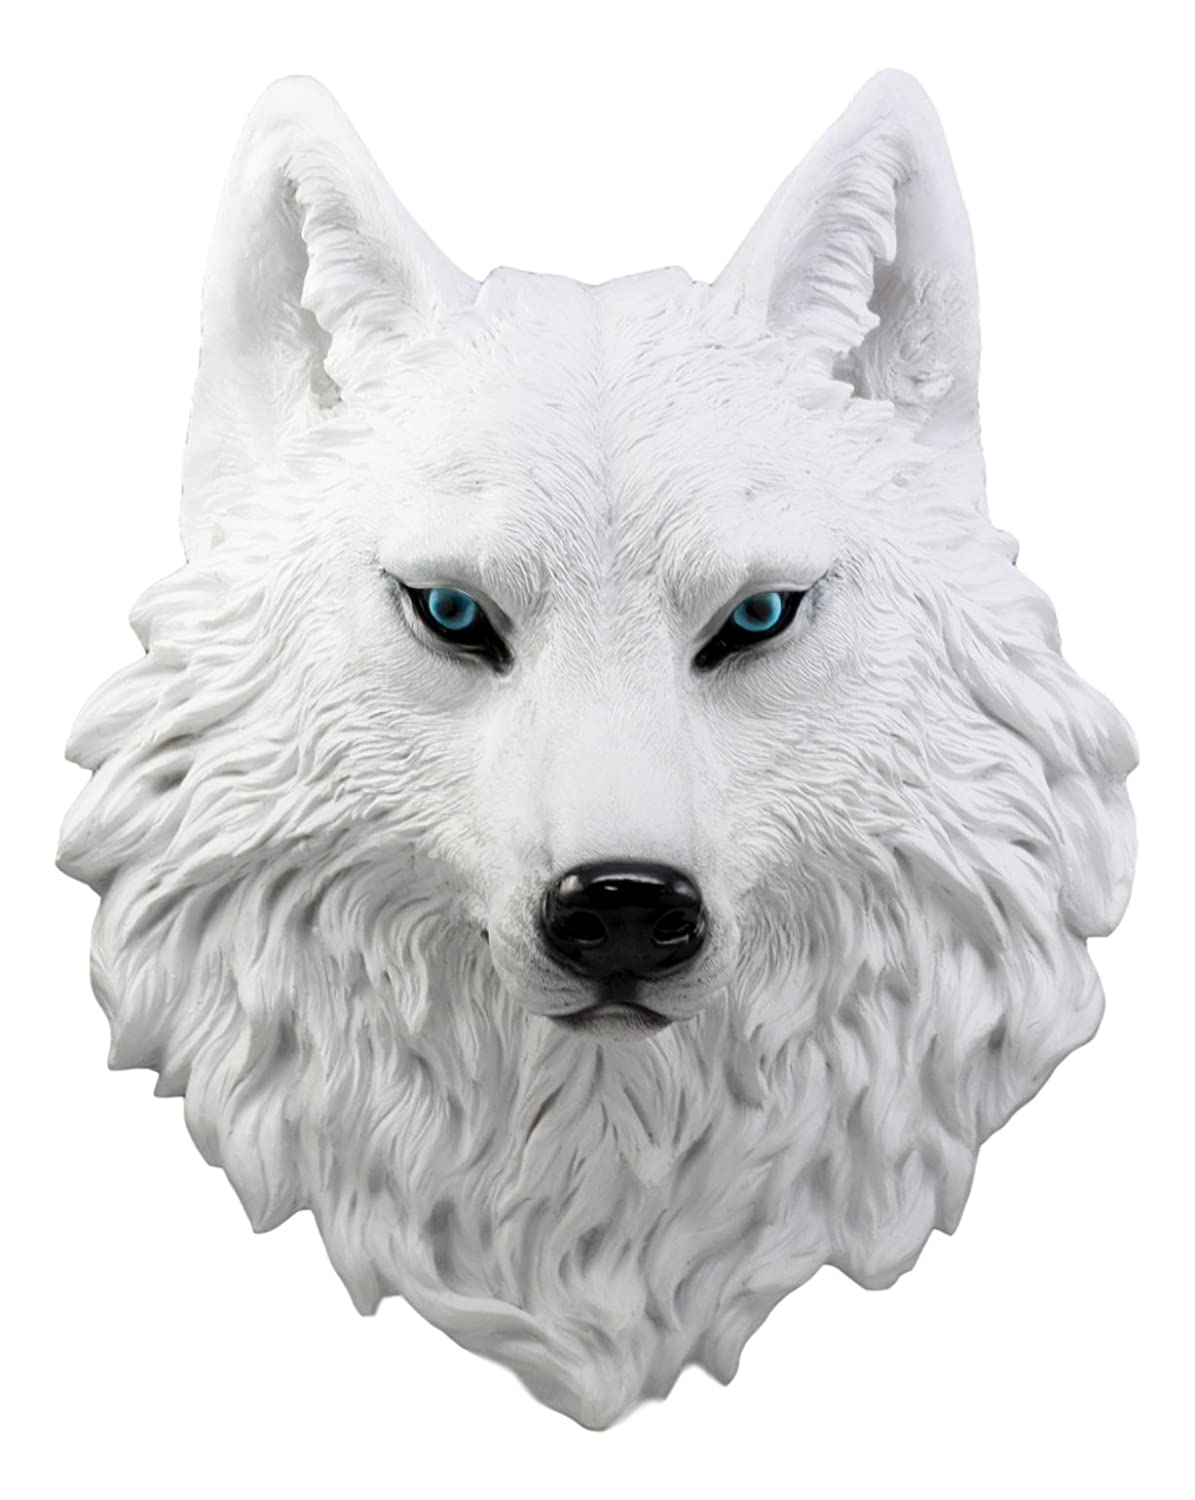 Ebros large ghost albino snow white wolf head wall decor plaque 16 tall taxidermy art decor sculpture canis lupus wall bust plaque